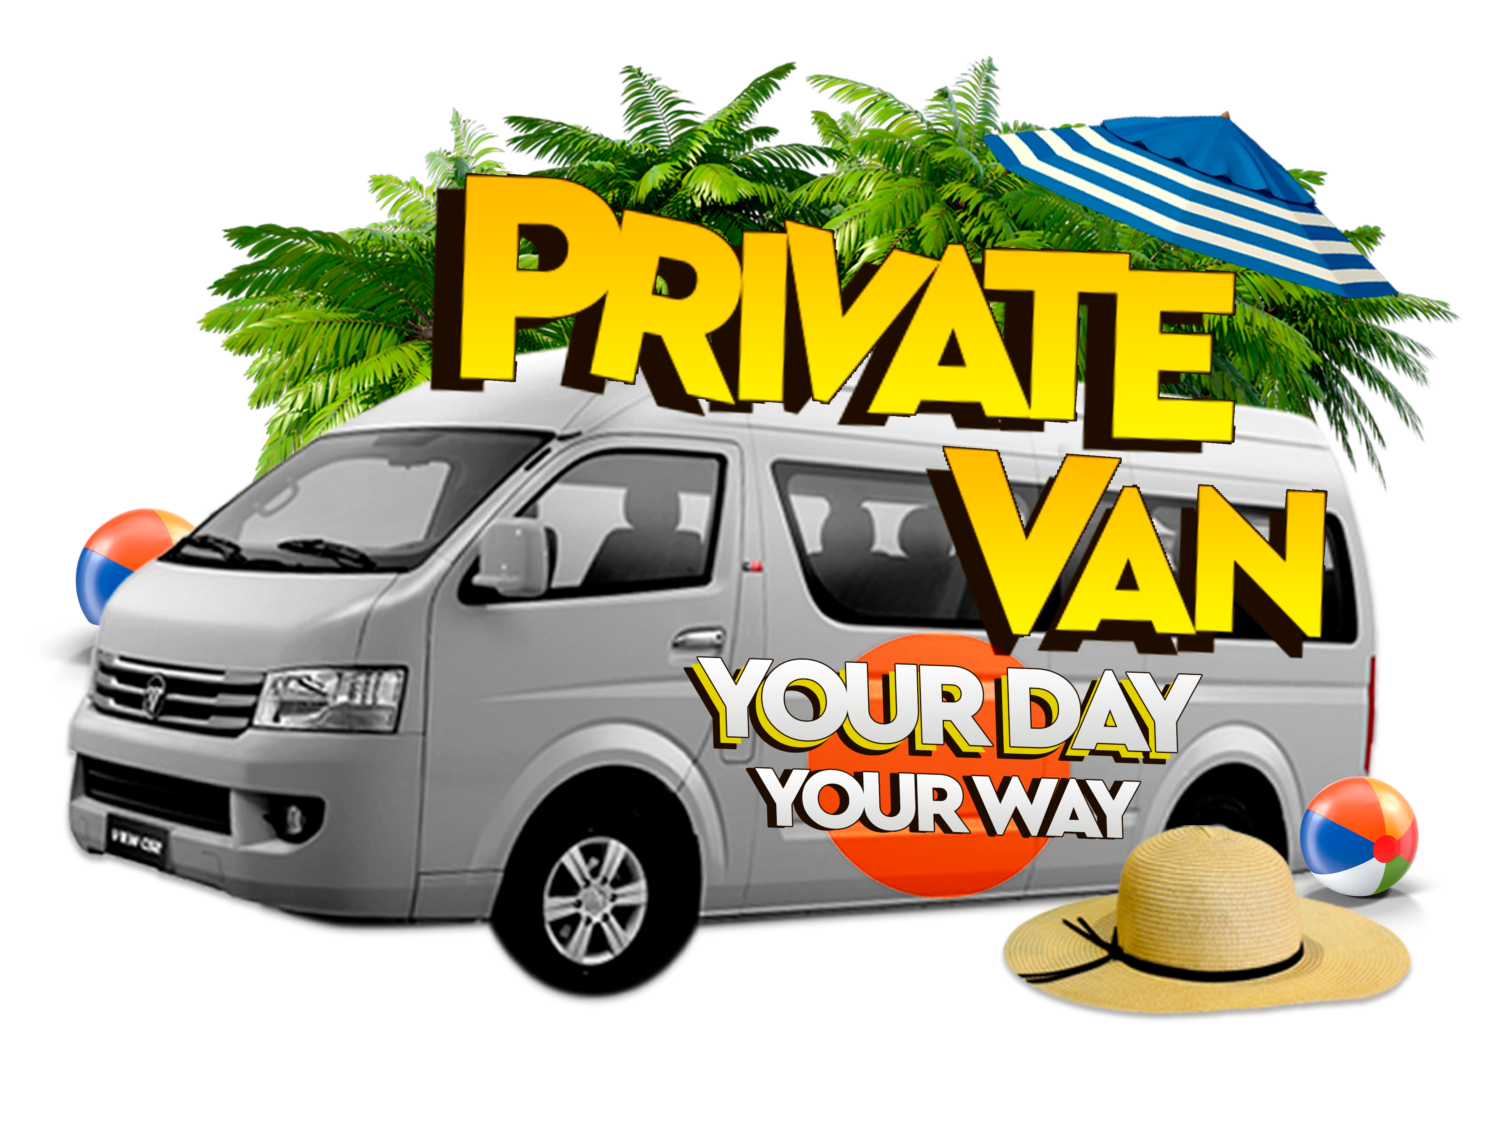 PRIVATE VAN YOUR DAY YOUR WAY